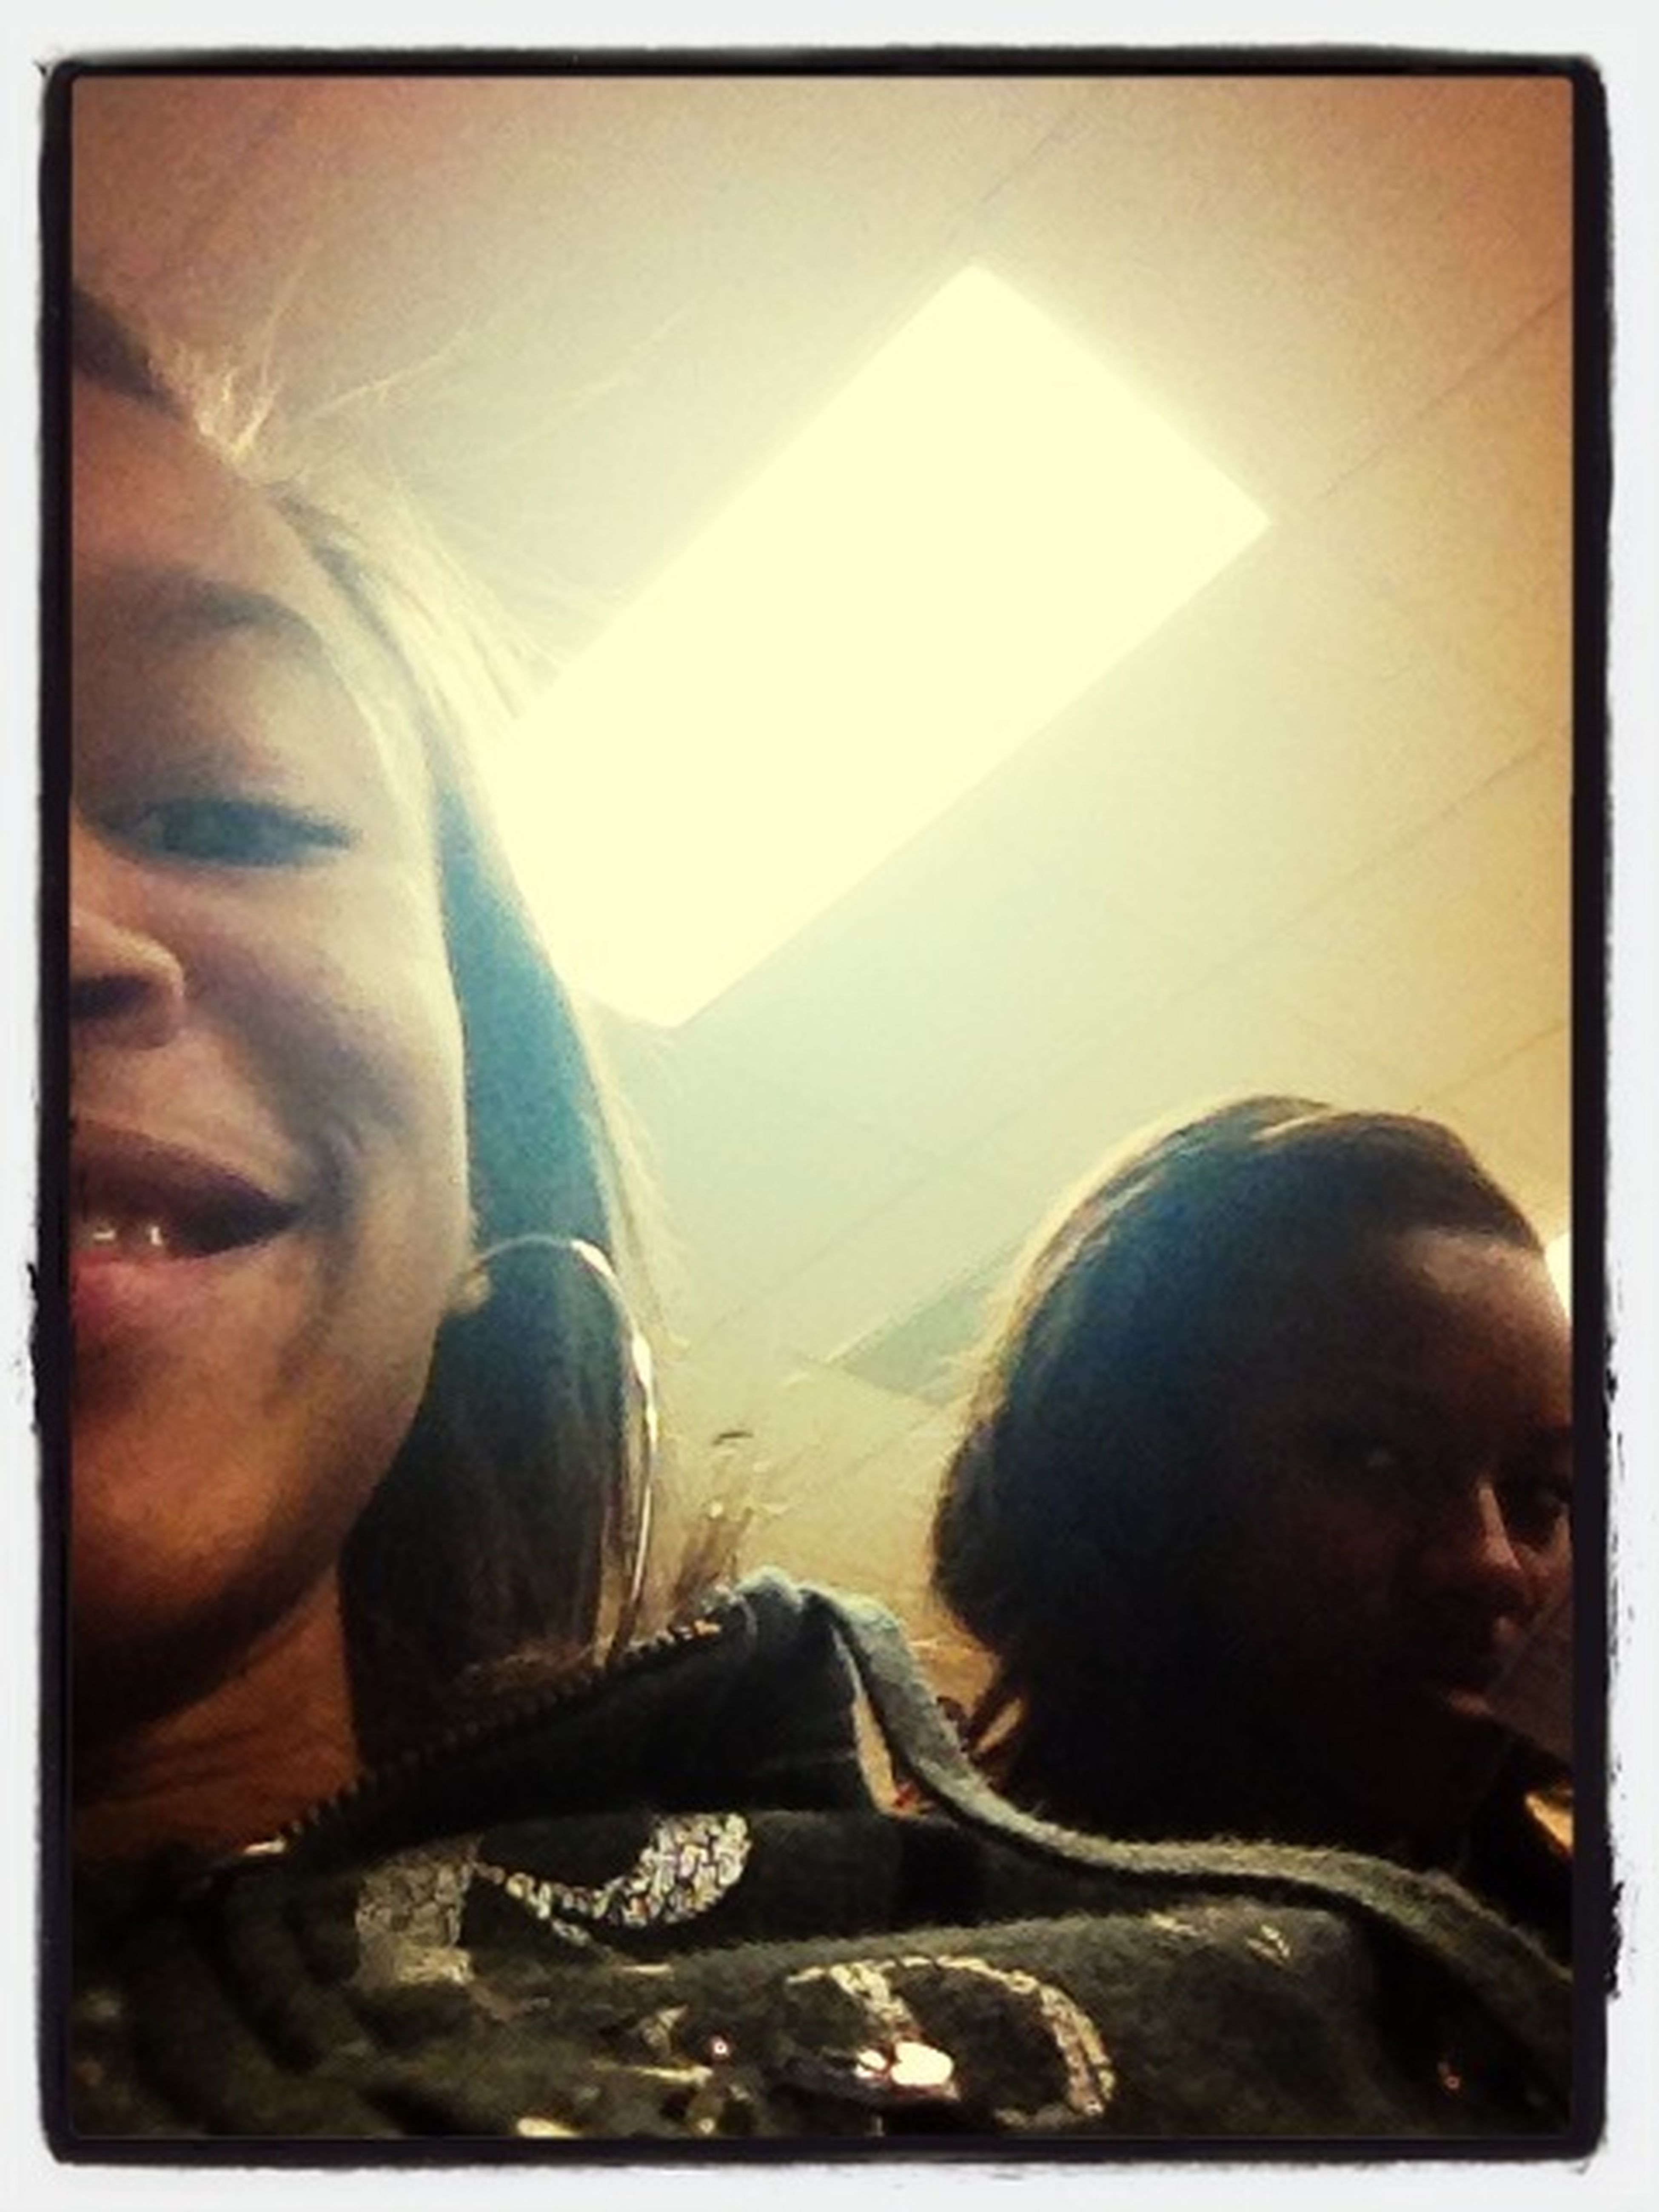 Creeping On Kaylor In Science ! Ahha